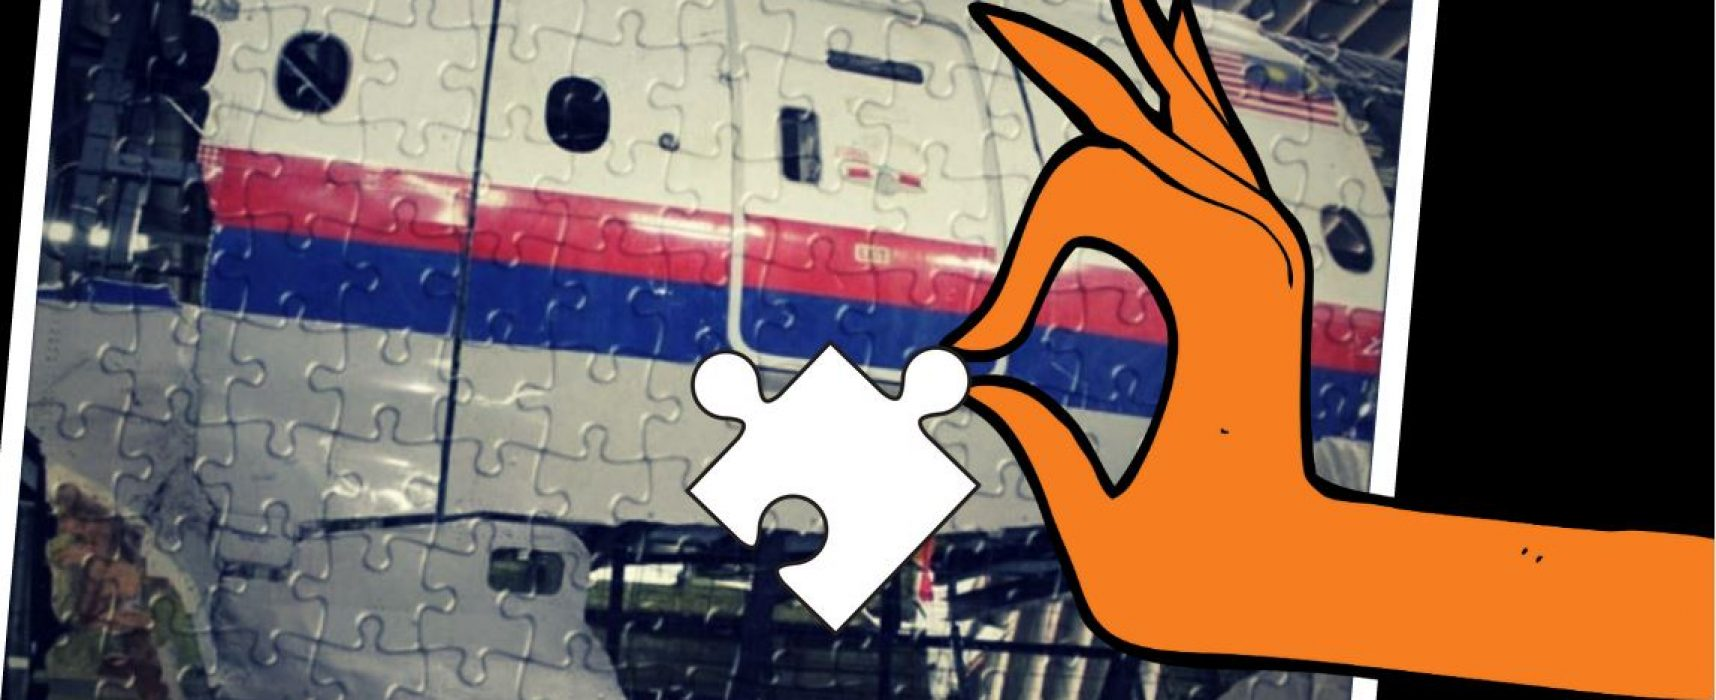 MH17: Time is Running Out for Disinformation